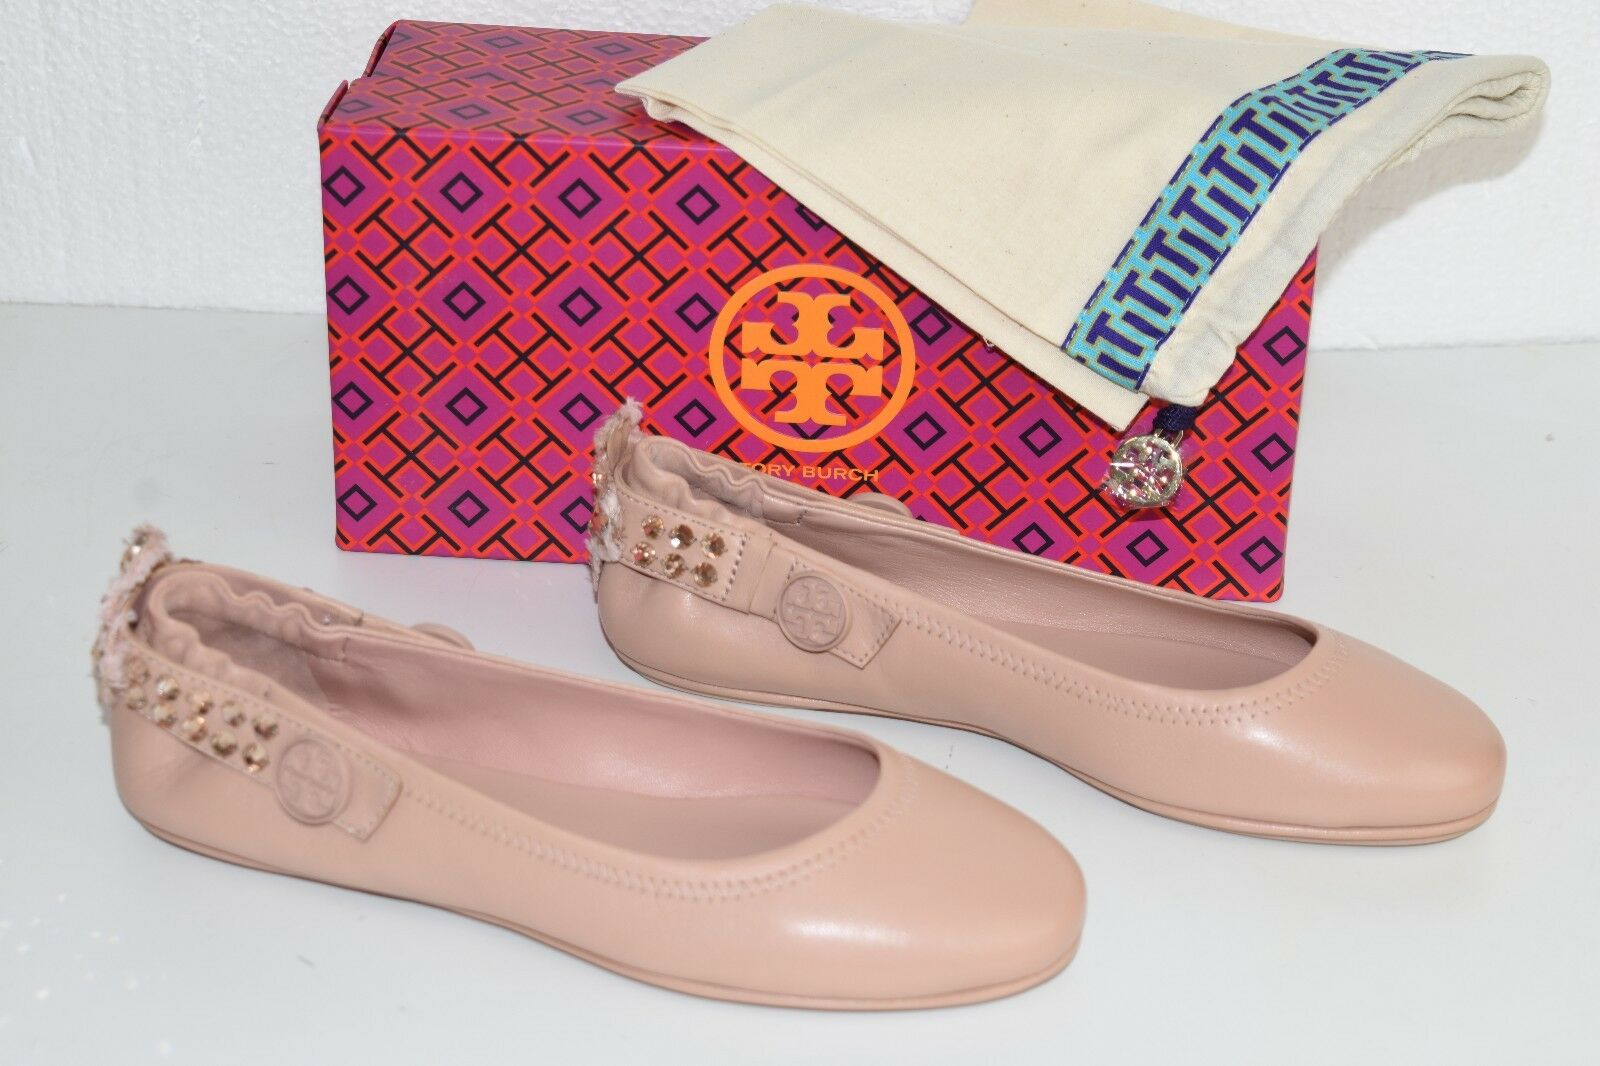 7ea6c92b74c ... NEW Tory Tory Tory Burch MINNIE Crystal EMBELLISHED TWO WAY FLATS Blush  Rose Shoes 7.5 9.5 ...